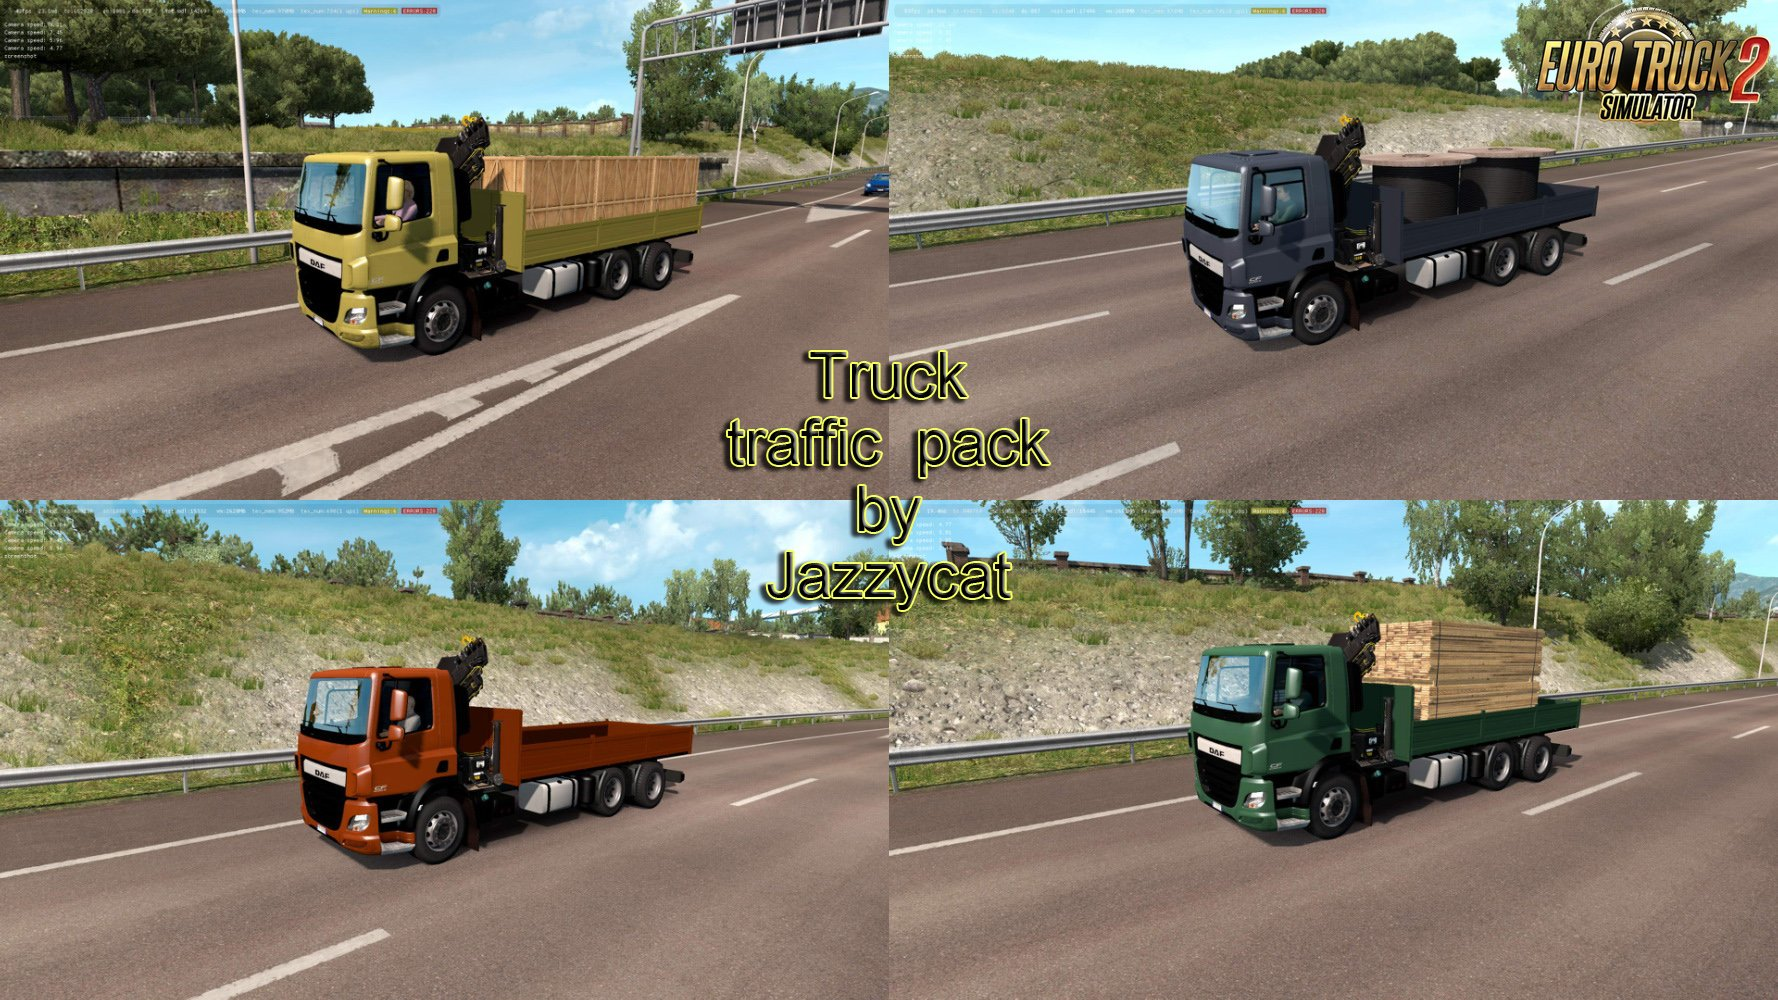 Truck Traffic Pack v3.2 by Jazzycat